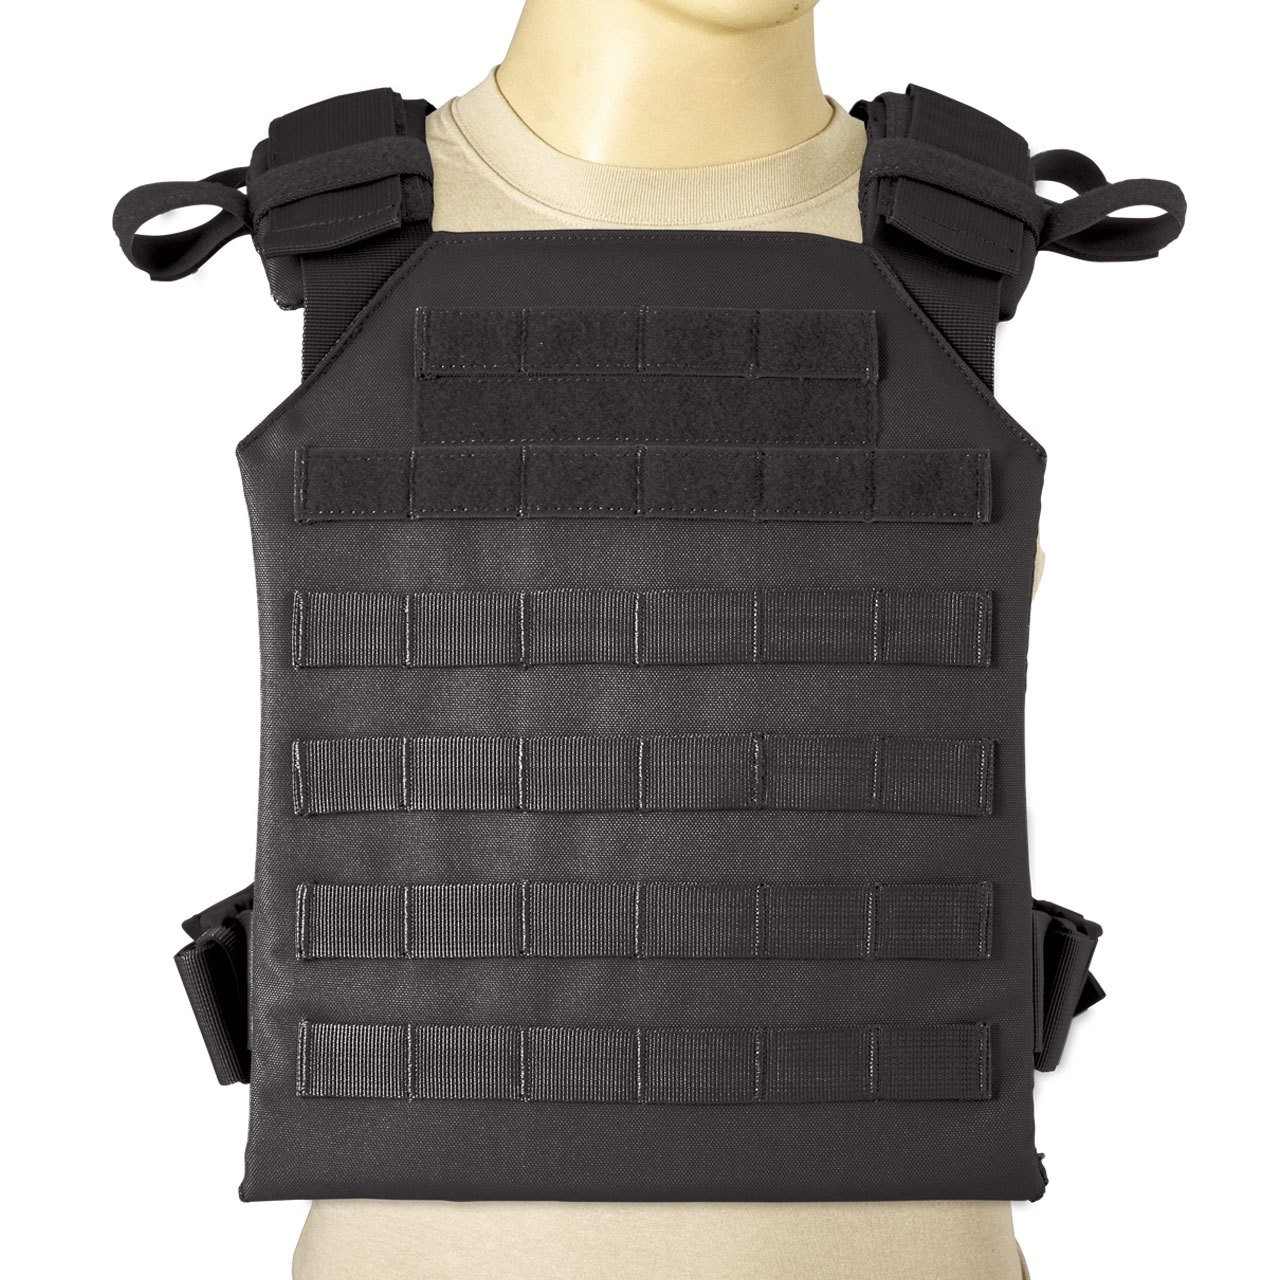 Buy Red Rock Gear MOLLE Plate Carriers at SWFA.com 394e0afb414